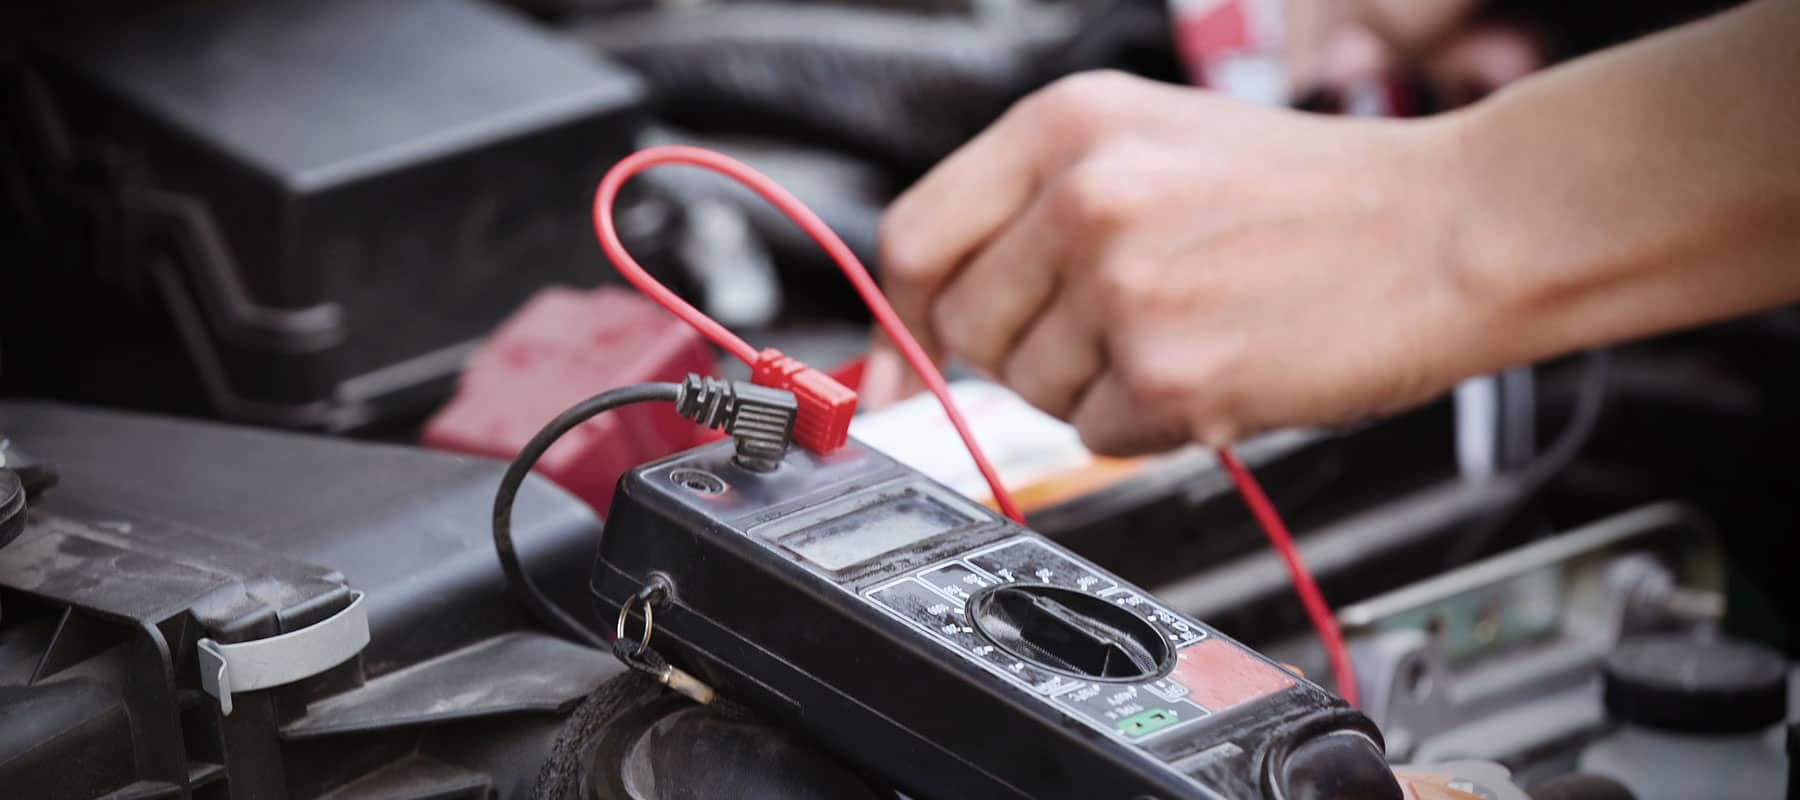 Battery picture of technician testing battery voltage